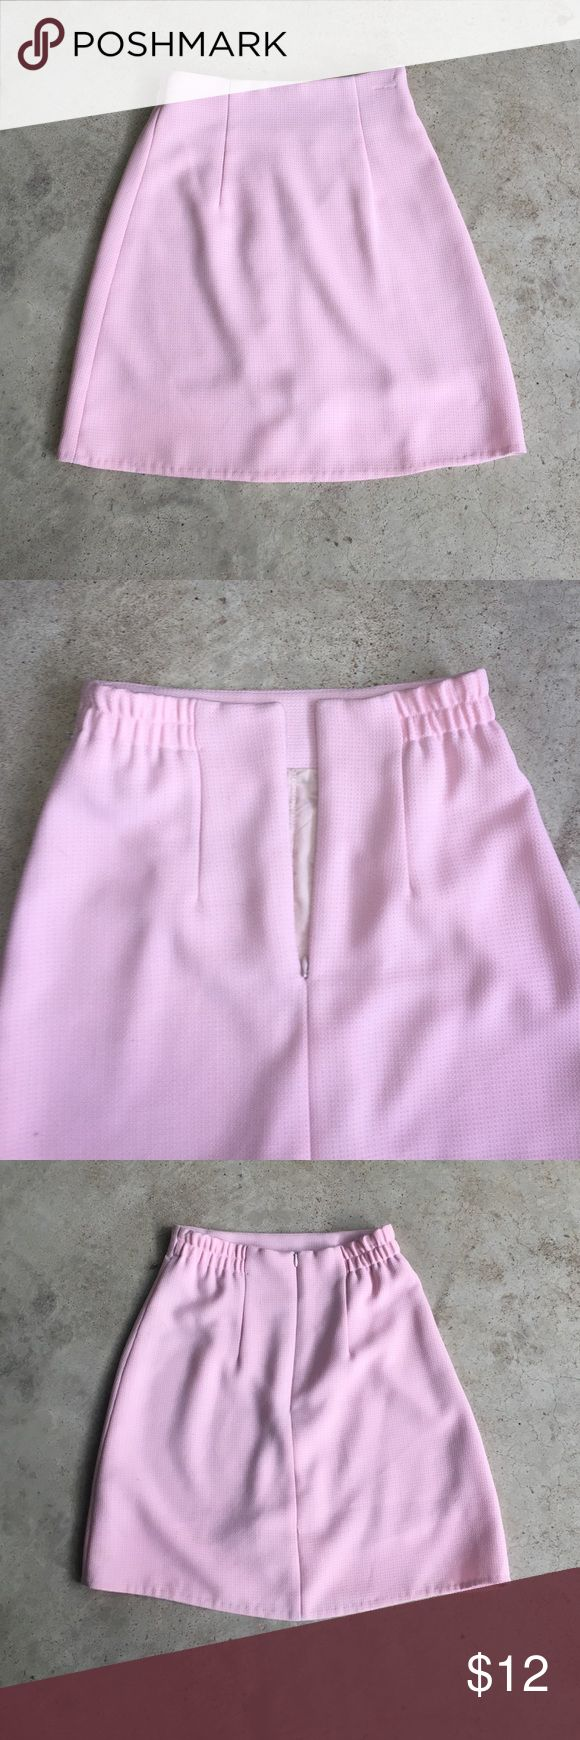 Boutique: Baby Pink Skort Baby Pink Skort • Has a stretch around the waistline • Has a slip on the inside as seen in photo • zipper can be located on the back • No Brand • Bought in a small Boutique in Manhattan • Open to offers • Great Condition • Brand used for exposure Anthropologie Shorts Skorts